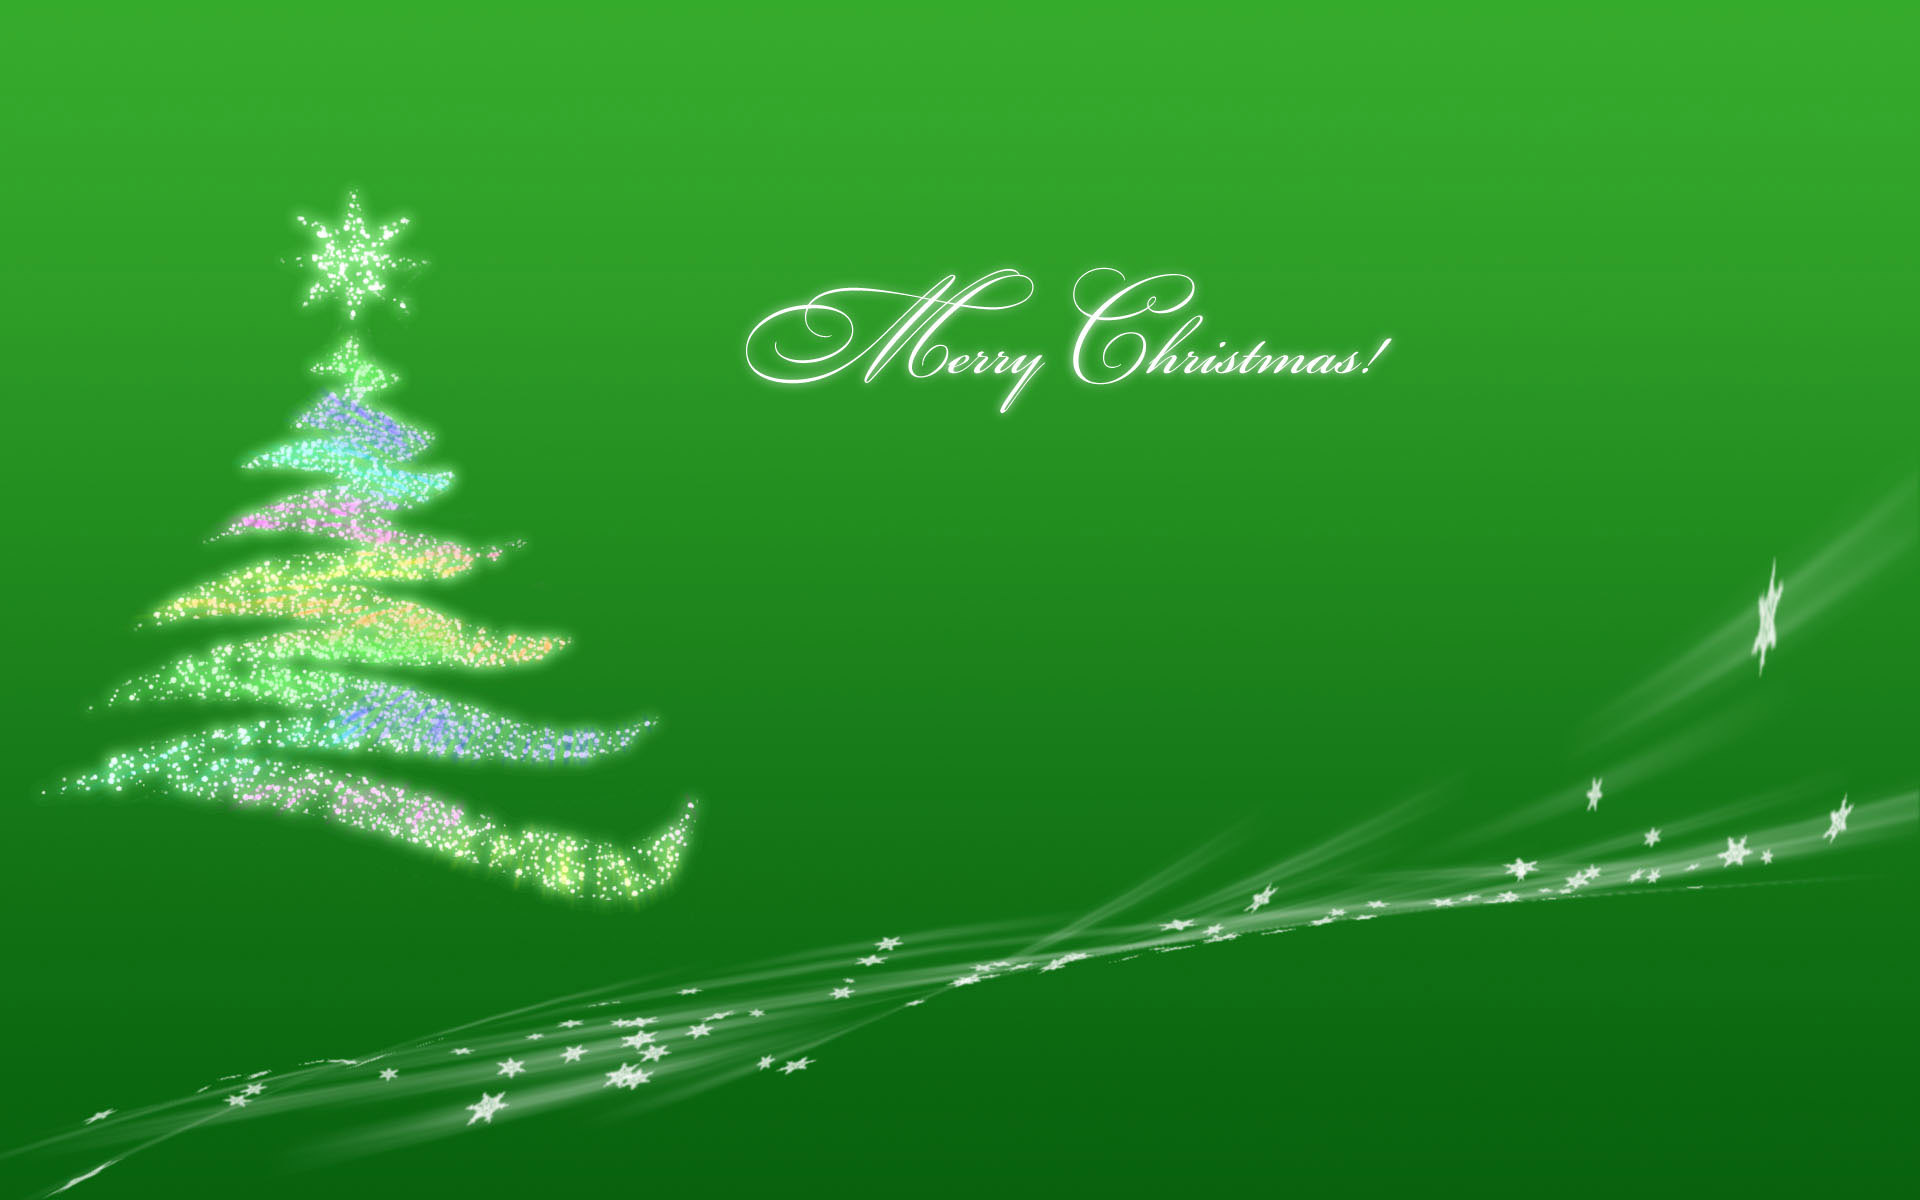 Christmas wallpaper high definition 27049